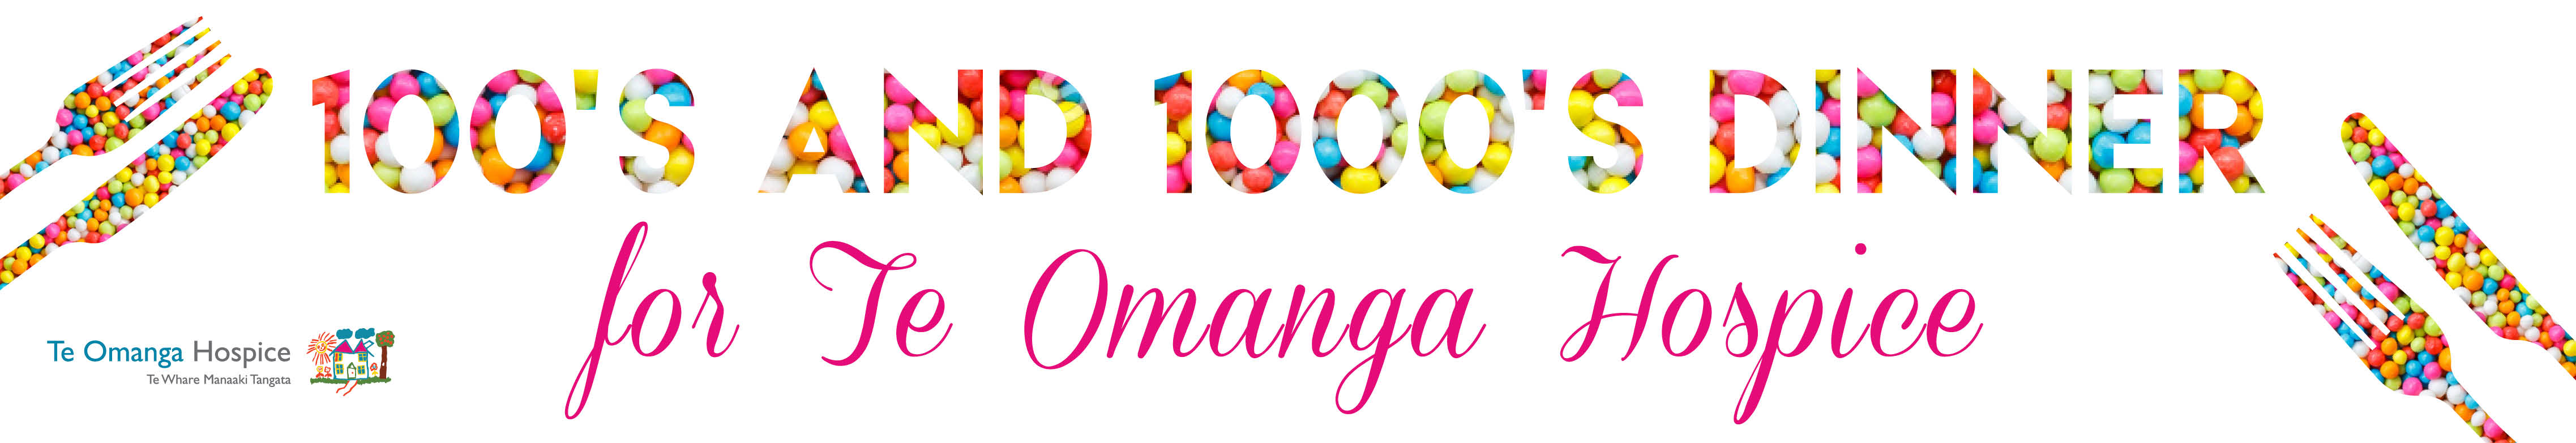 100s and 1000s dinner for Te Omanga Hospice